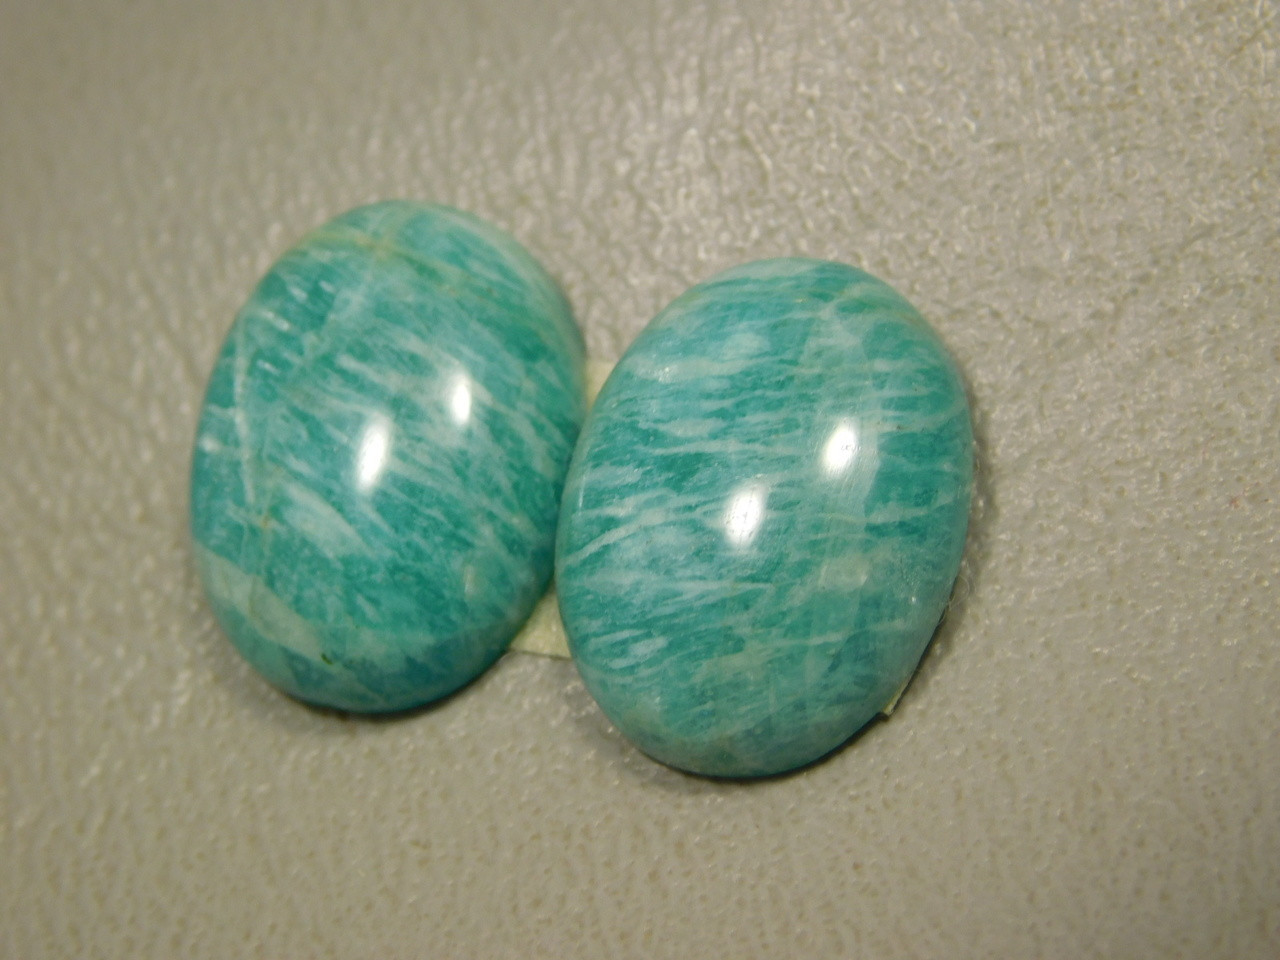 Green Amazonite Matched Pairs Cabochons Semiprecious Stones #19